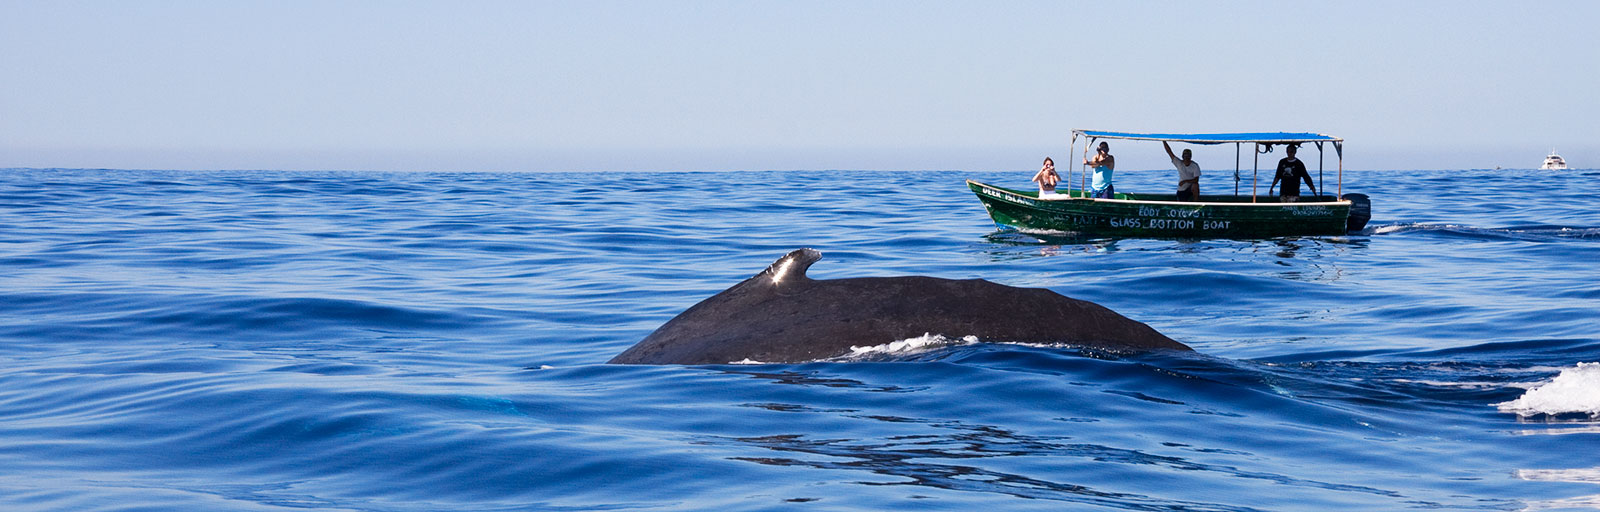 Best Yoga Retreats in Mexico: Whale Watching Yoga Retreat